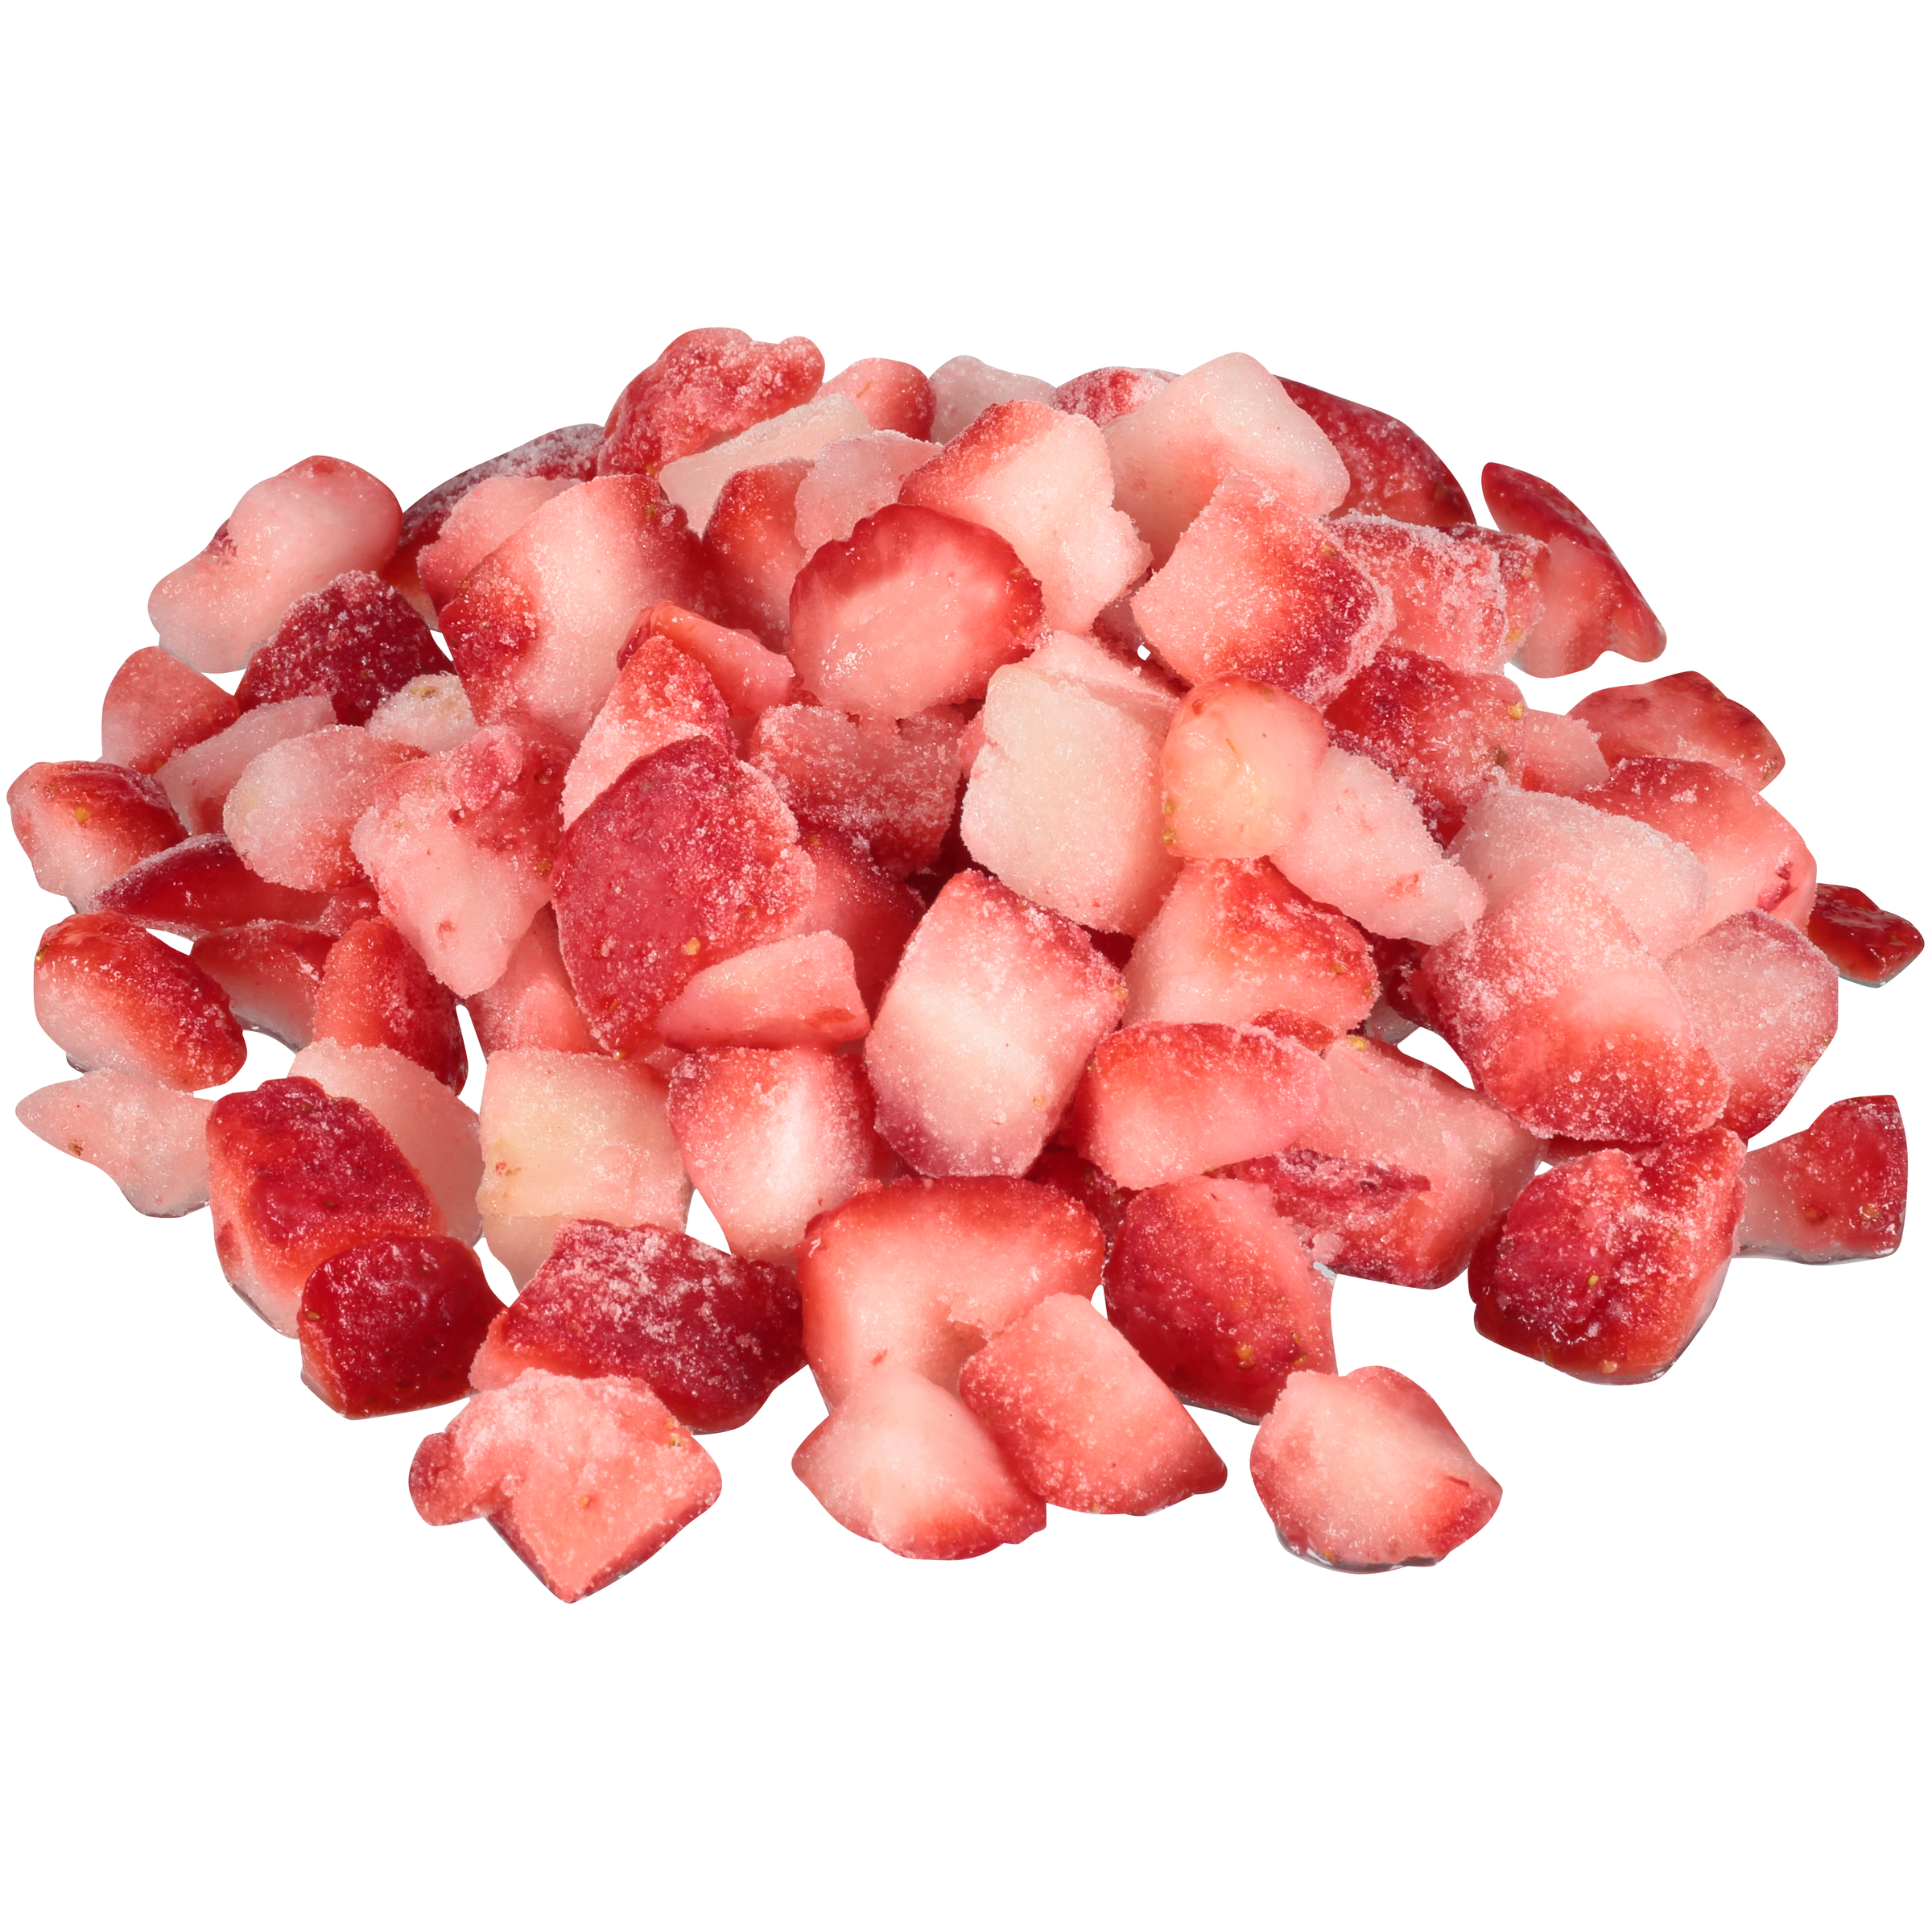 Strawberry Diced 30# 1/2 Inch